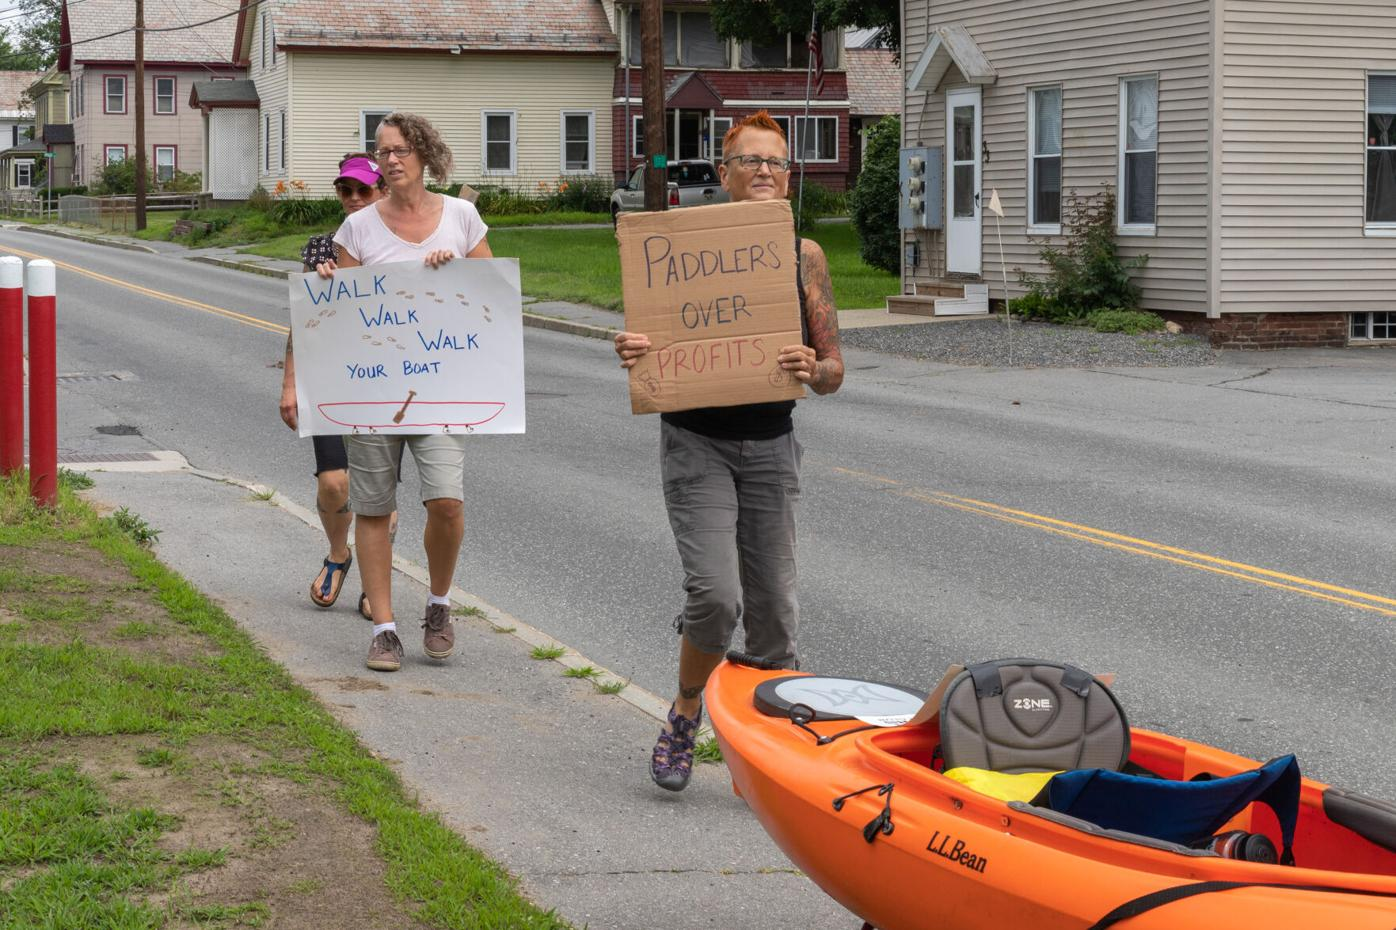 Marchers carry signs in the portage parade along Route 12 in North Walpole-6581.jpg